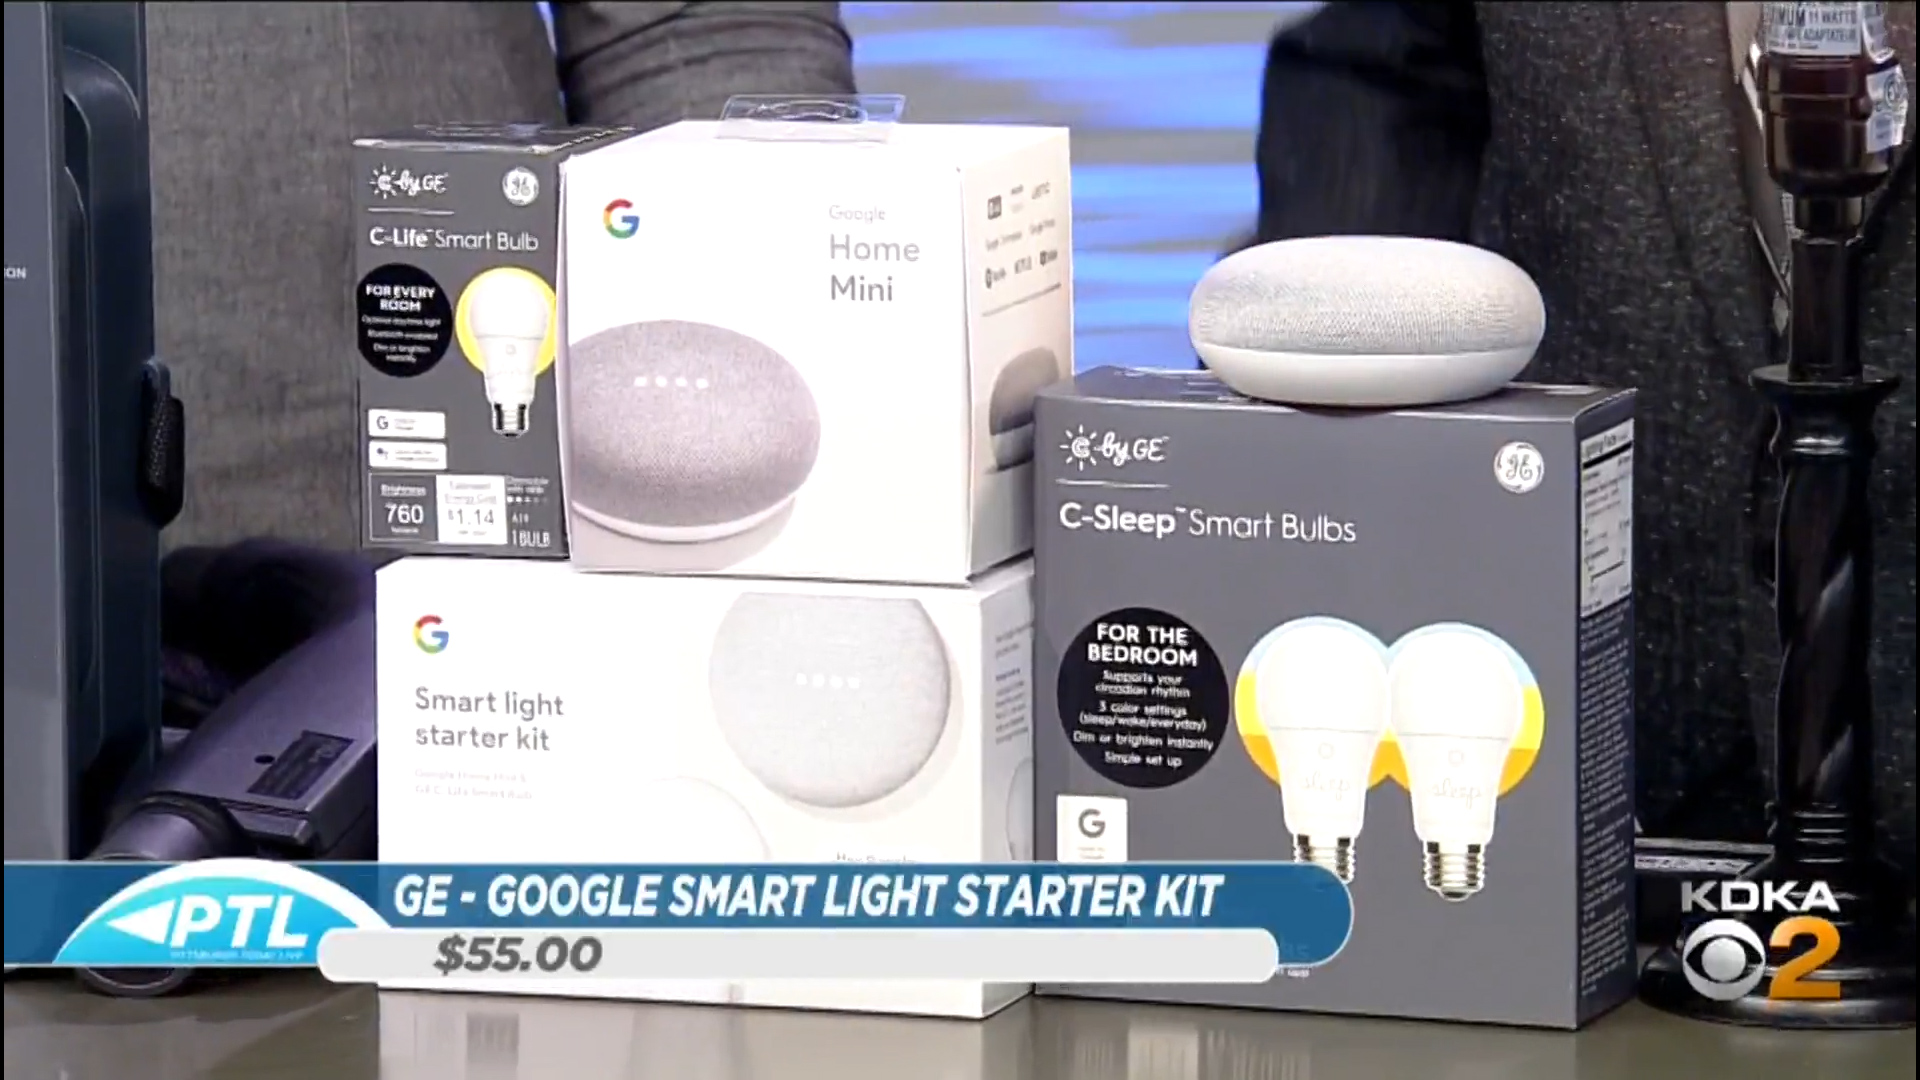 GE – GOOGLE SMART LIGHT STARTER KIT - $55.00Shop Now, also available at Lowe's